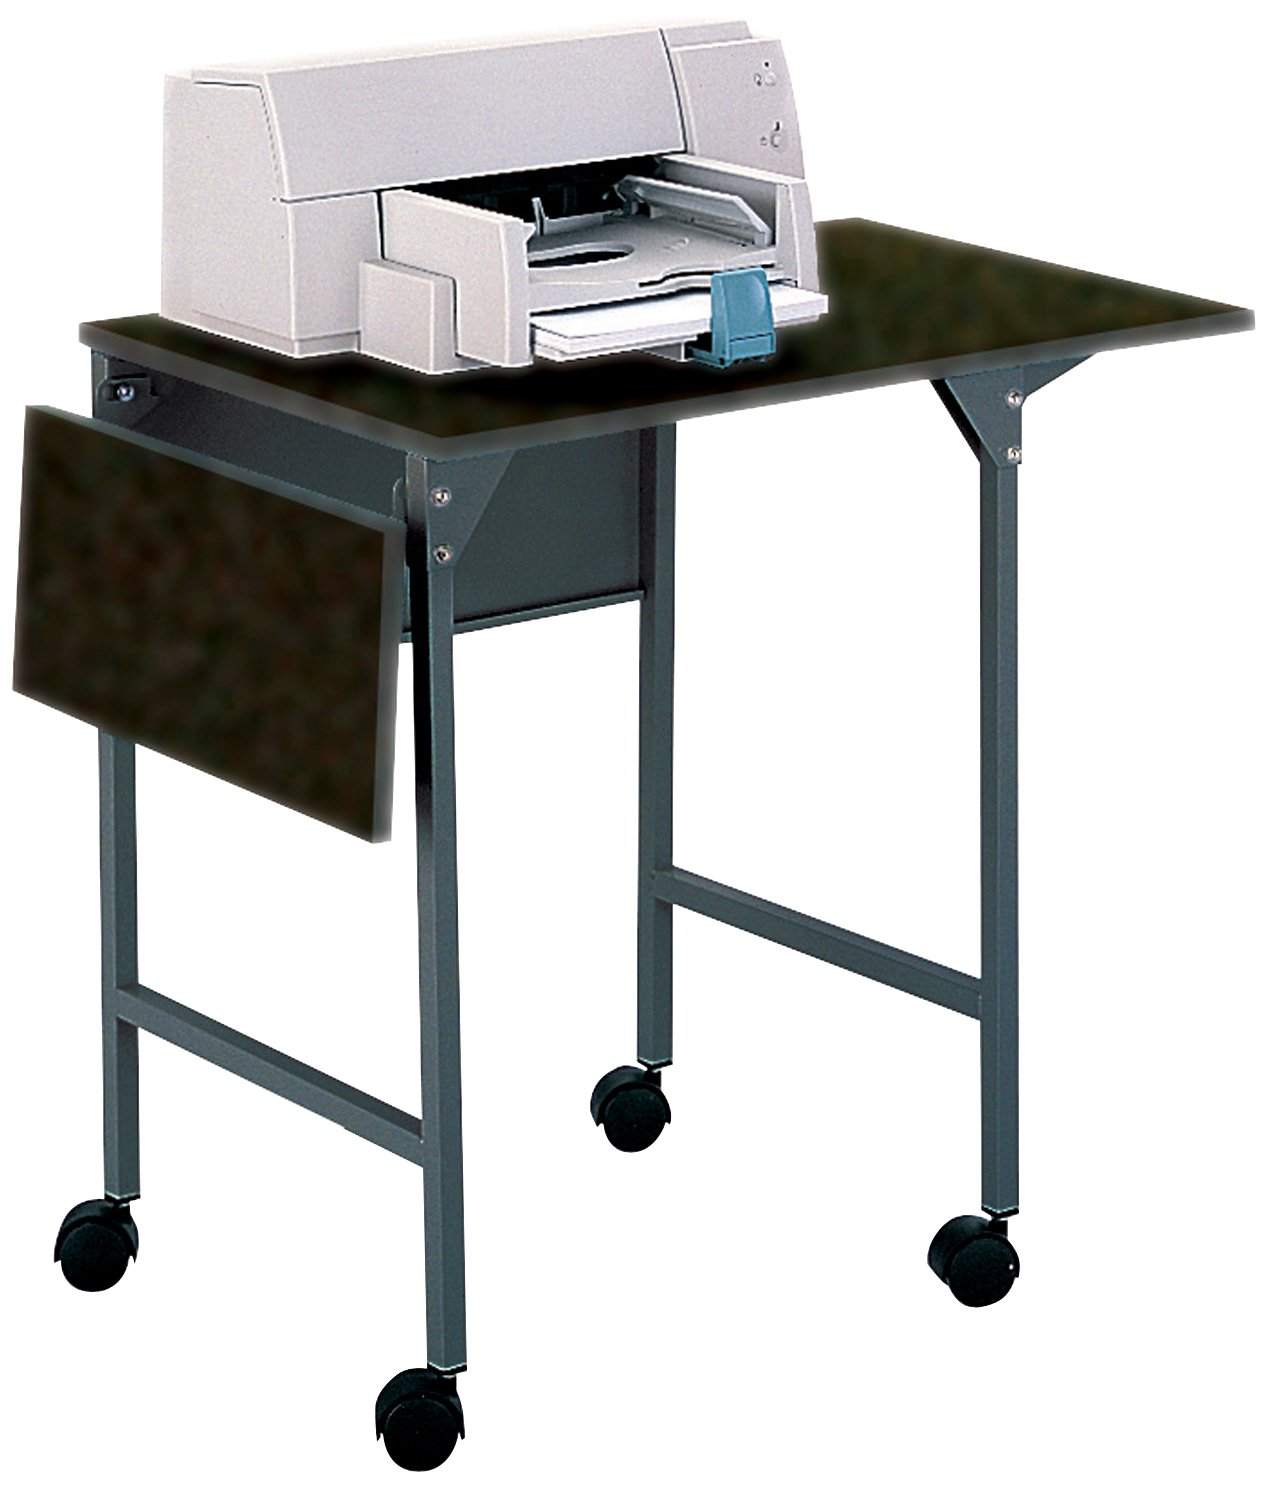 Amazon.com: Safco Products 1876BL Machine Stand/Desk With Drop Leaves, Black:  Kitchen U0026 Dining